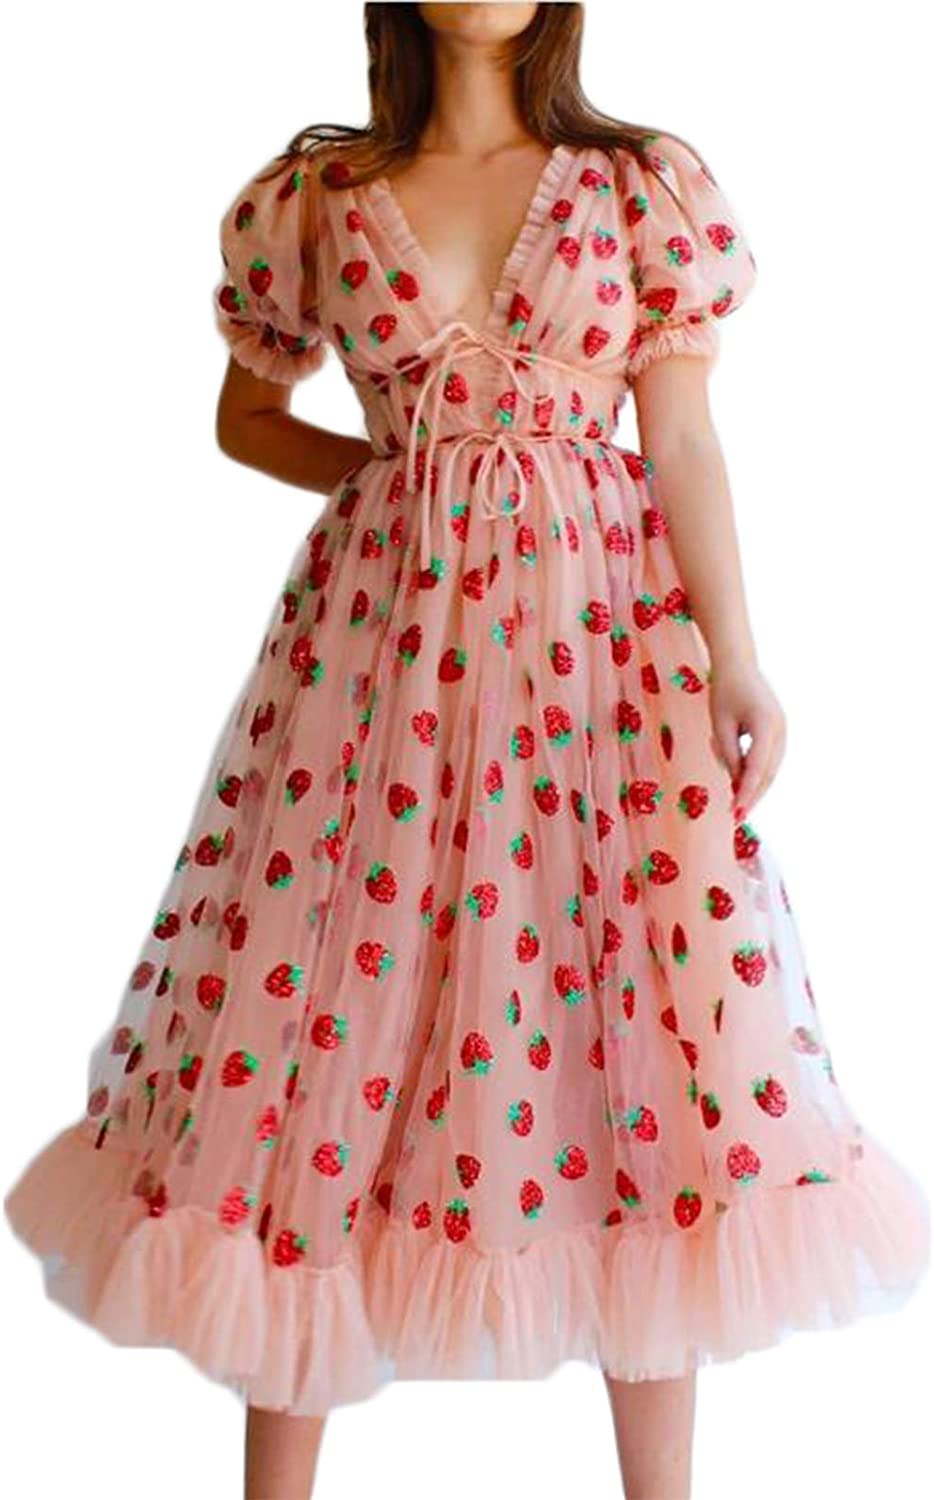 Dpnhyo Sexy V-Neck Lace Up Dress for Women Strawberry Sweet Mesh Yarn Sleeve Princess Dress Embroidered Cocktail Party